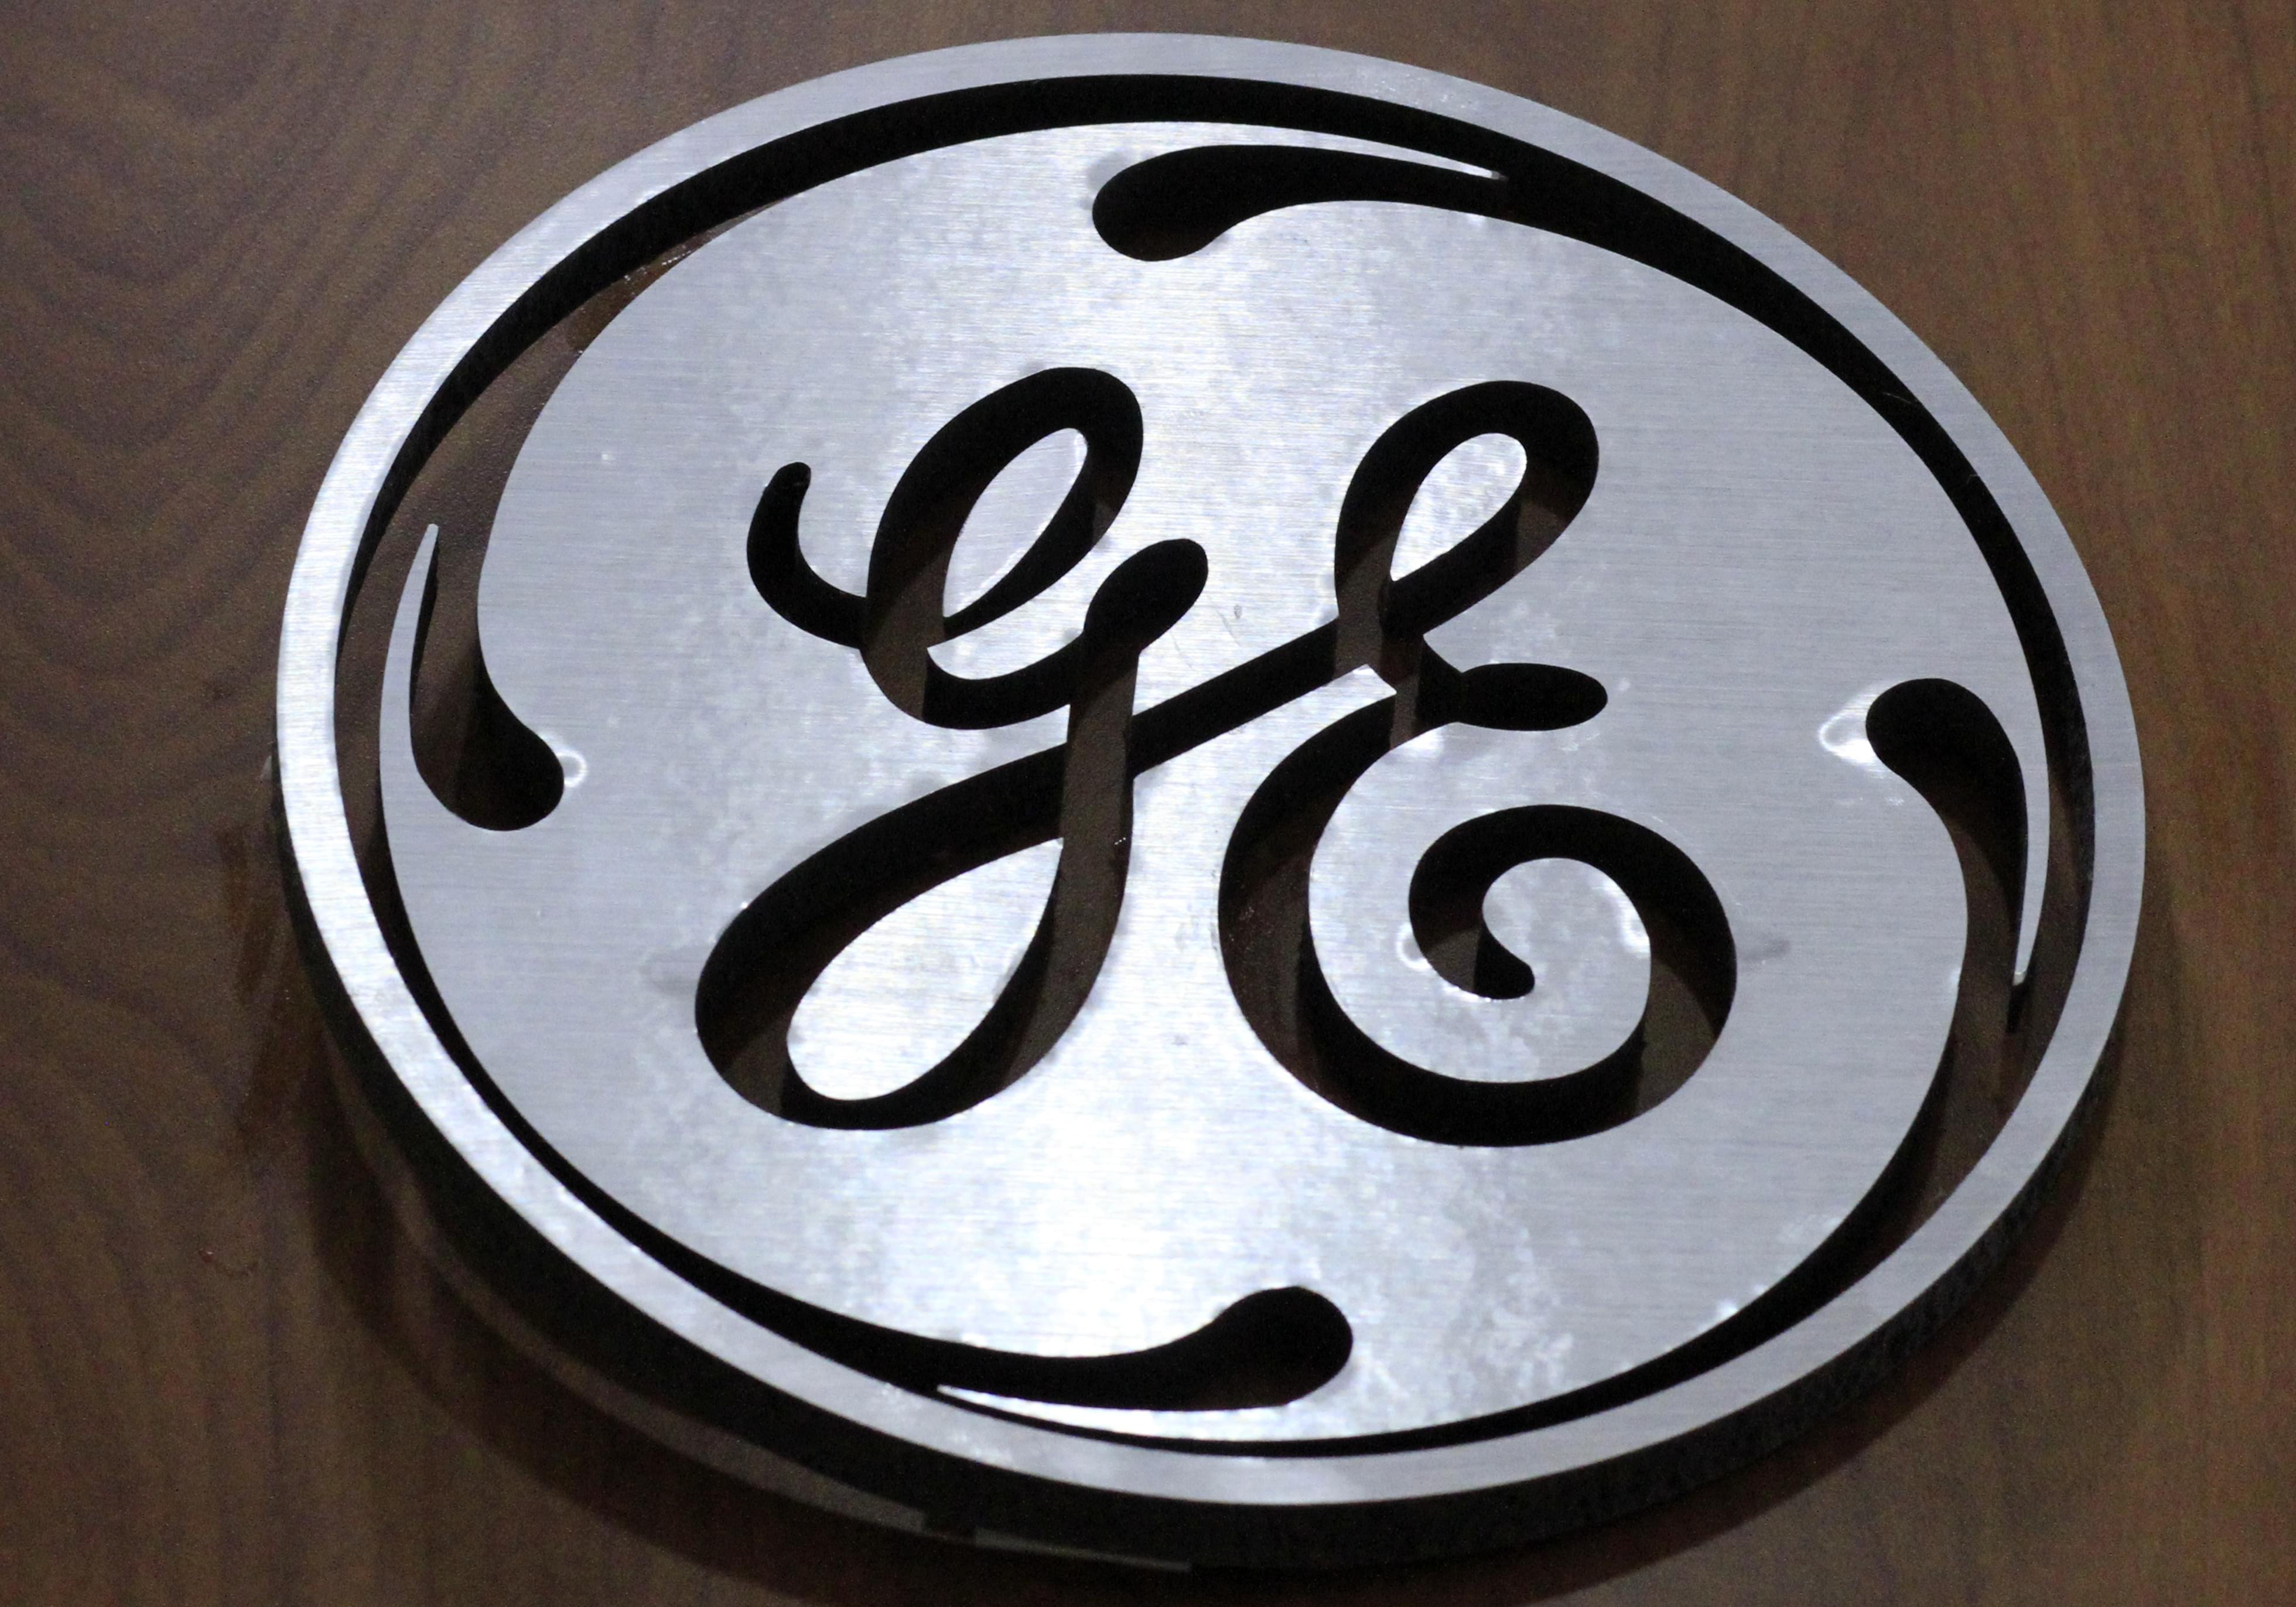 In this Thursday, Jan. 16, 2014, file photo, a General Electric logo is displayed at a store in Cranberry Township, Pa.